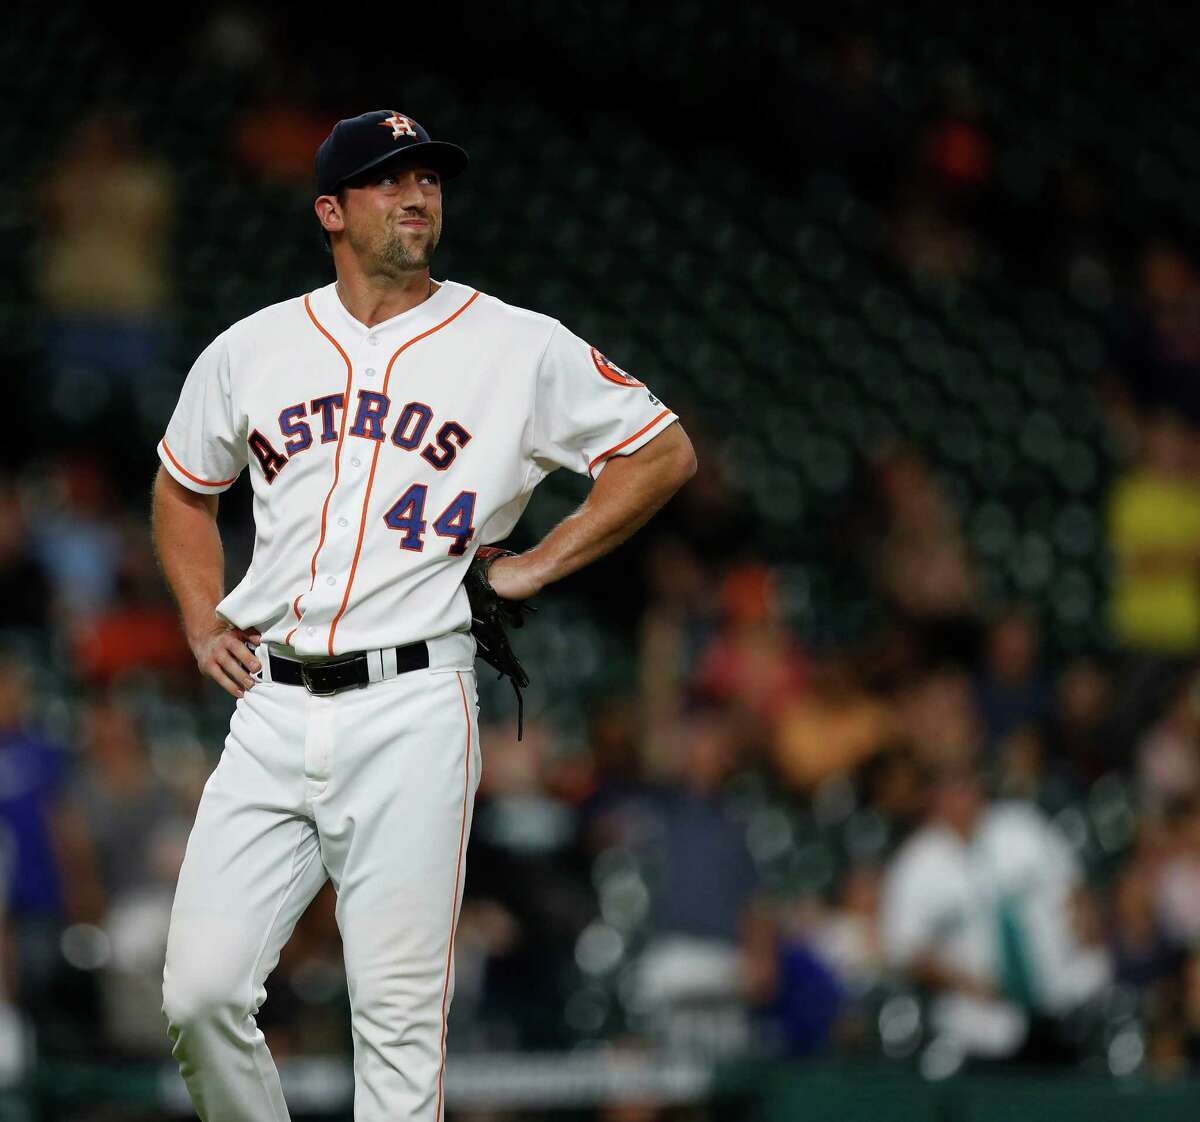 Astros reliever Luke Gregerson gave up Robinson Cano's game-winning solo home run in the 11th inning. It was the Mariners second baseman's second home run of the night and perhaps the most telling of his six homers at Minute Maid Park this season.